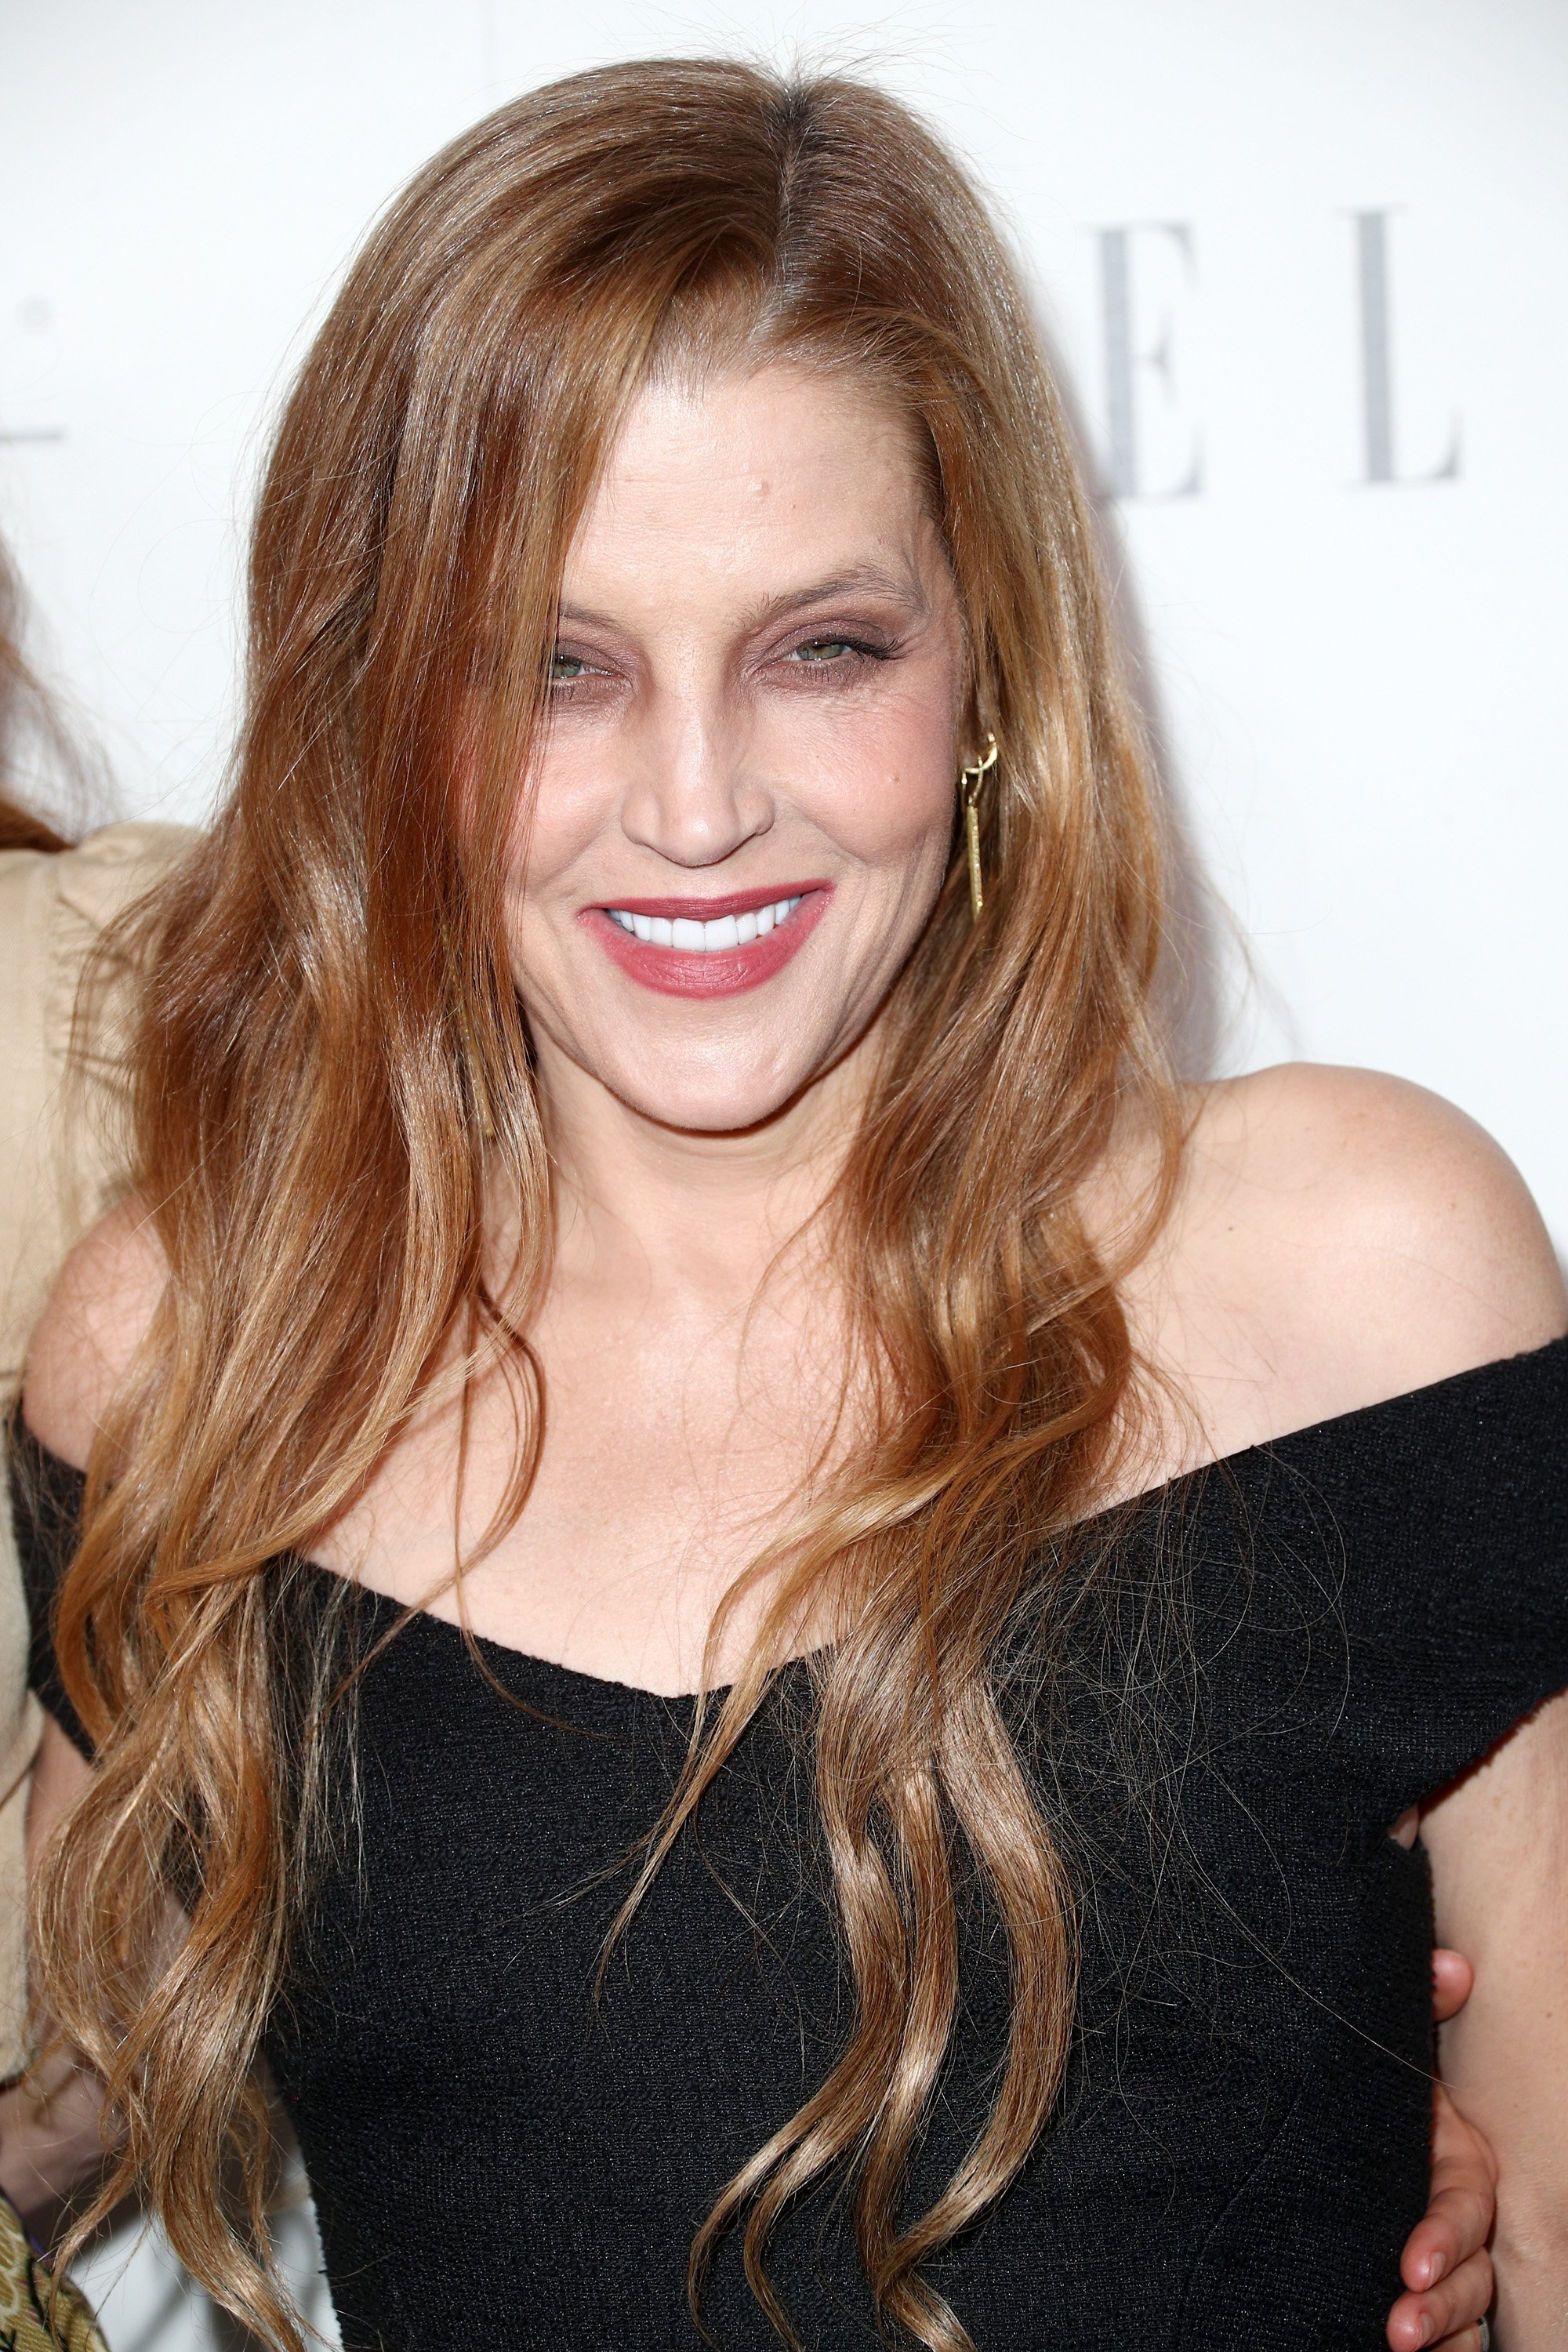 Lisa Marie Presley, singer, songwriter, poet | Photo: Getty Images